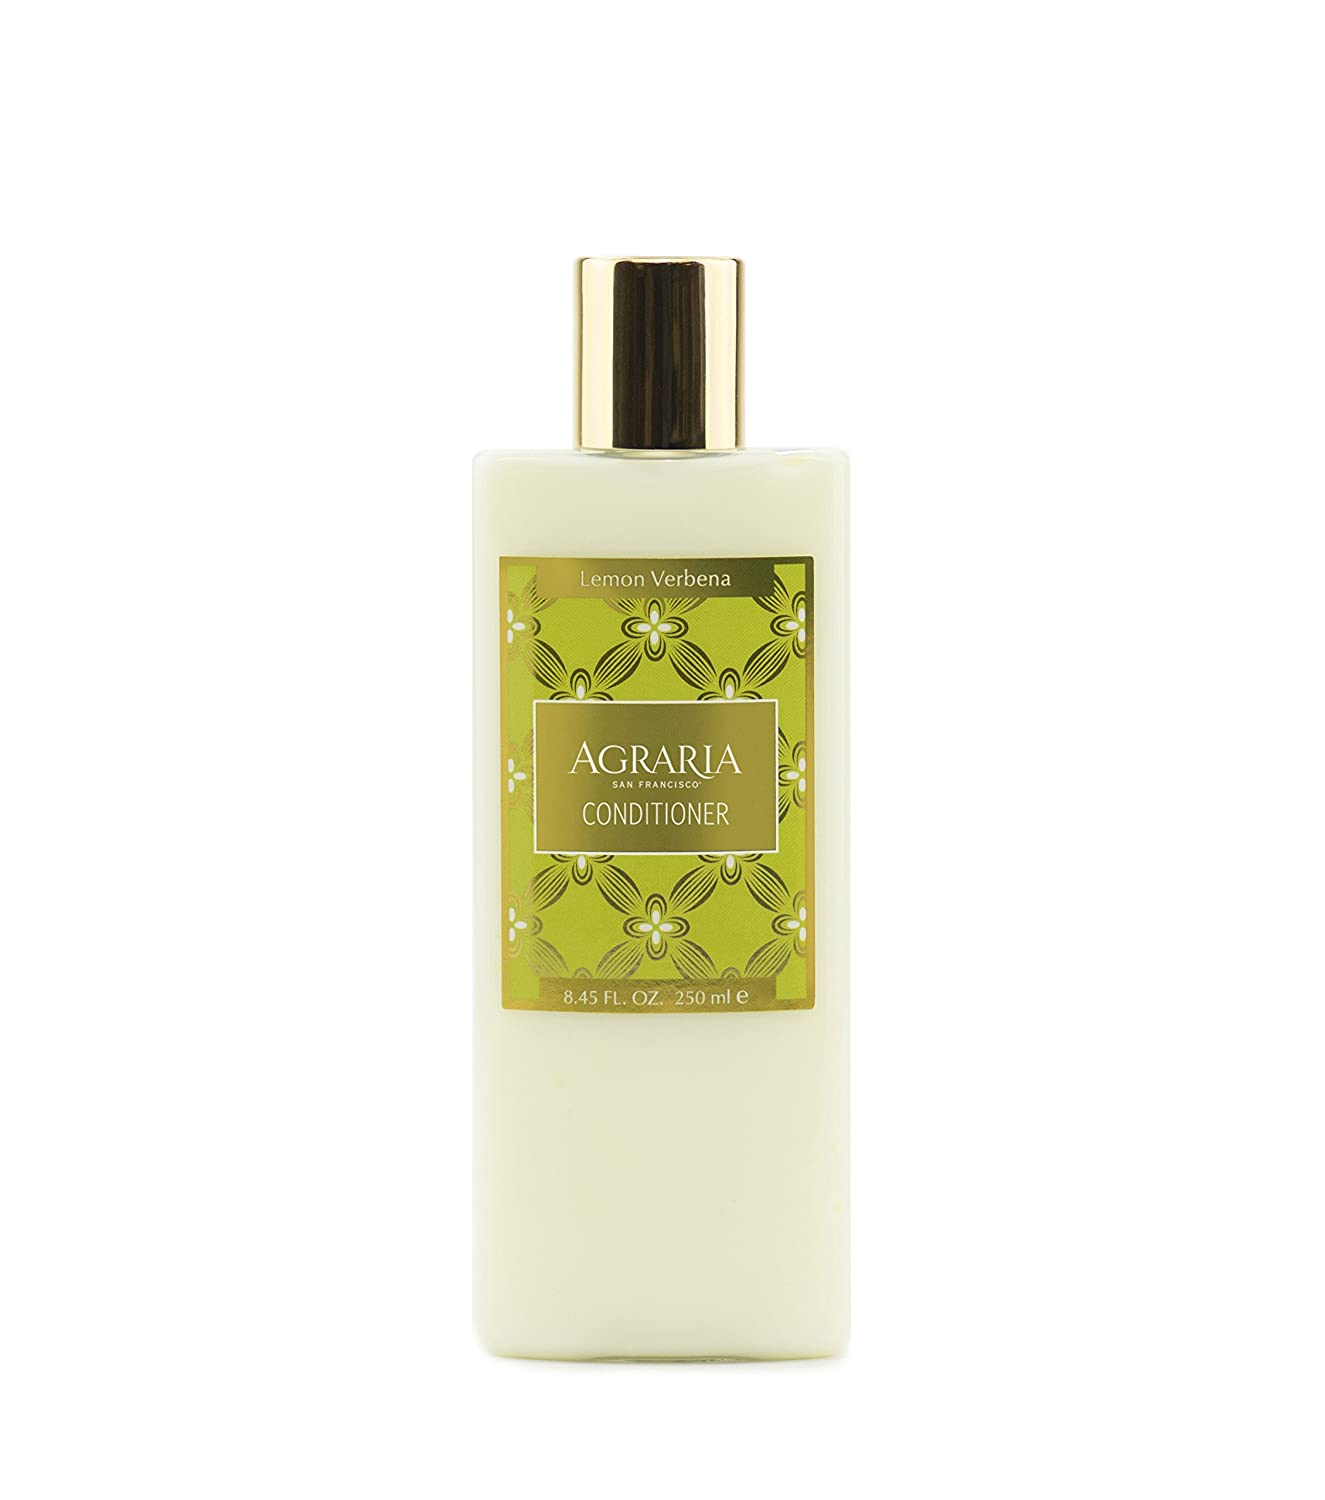 AGRARIA Lemon Verbena Luxury Conditioner Works On All Hair Types, 8.45 fl Ounces